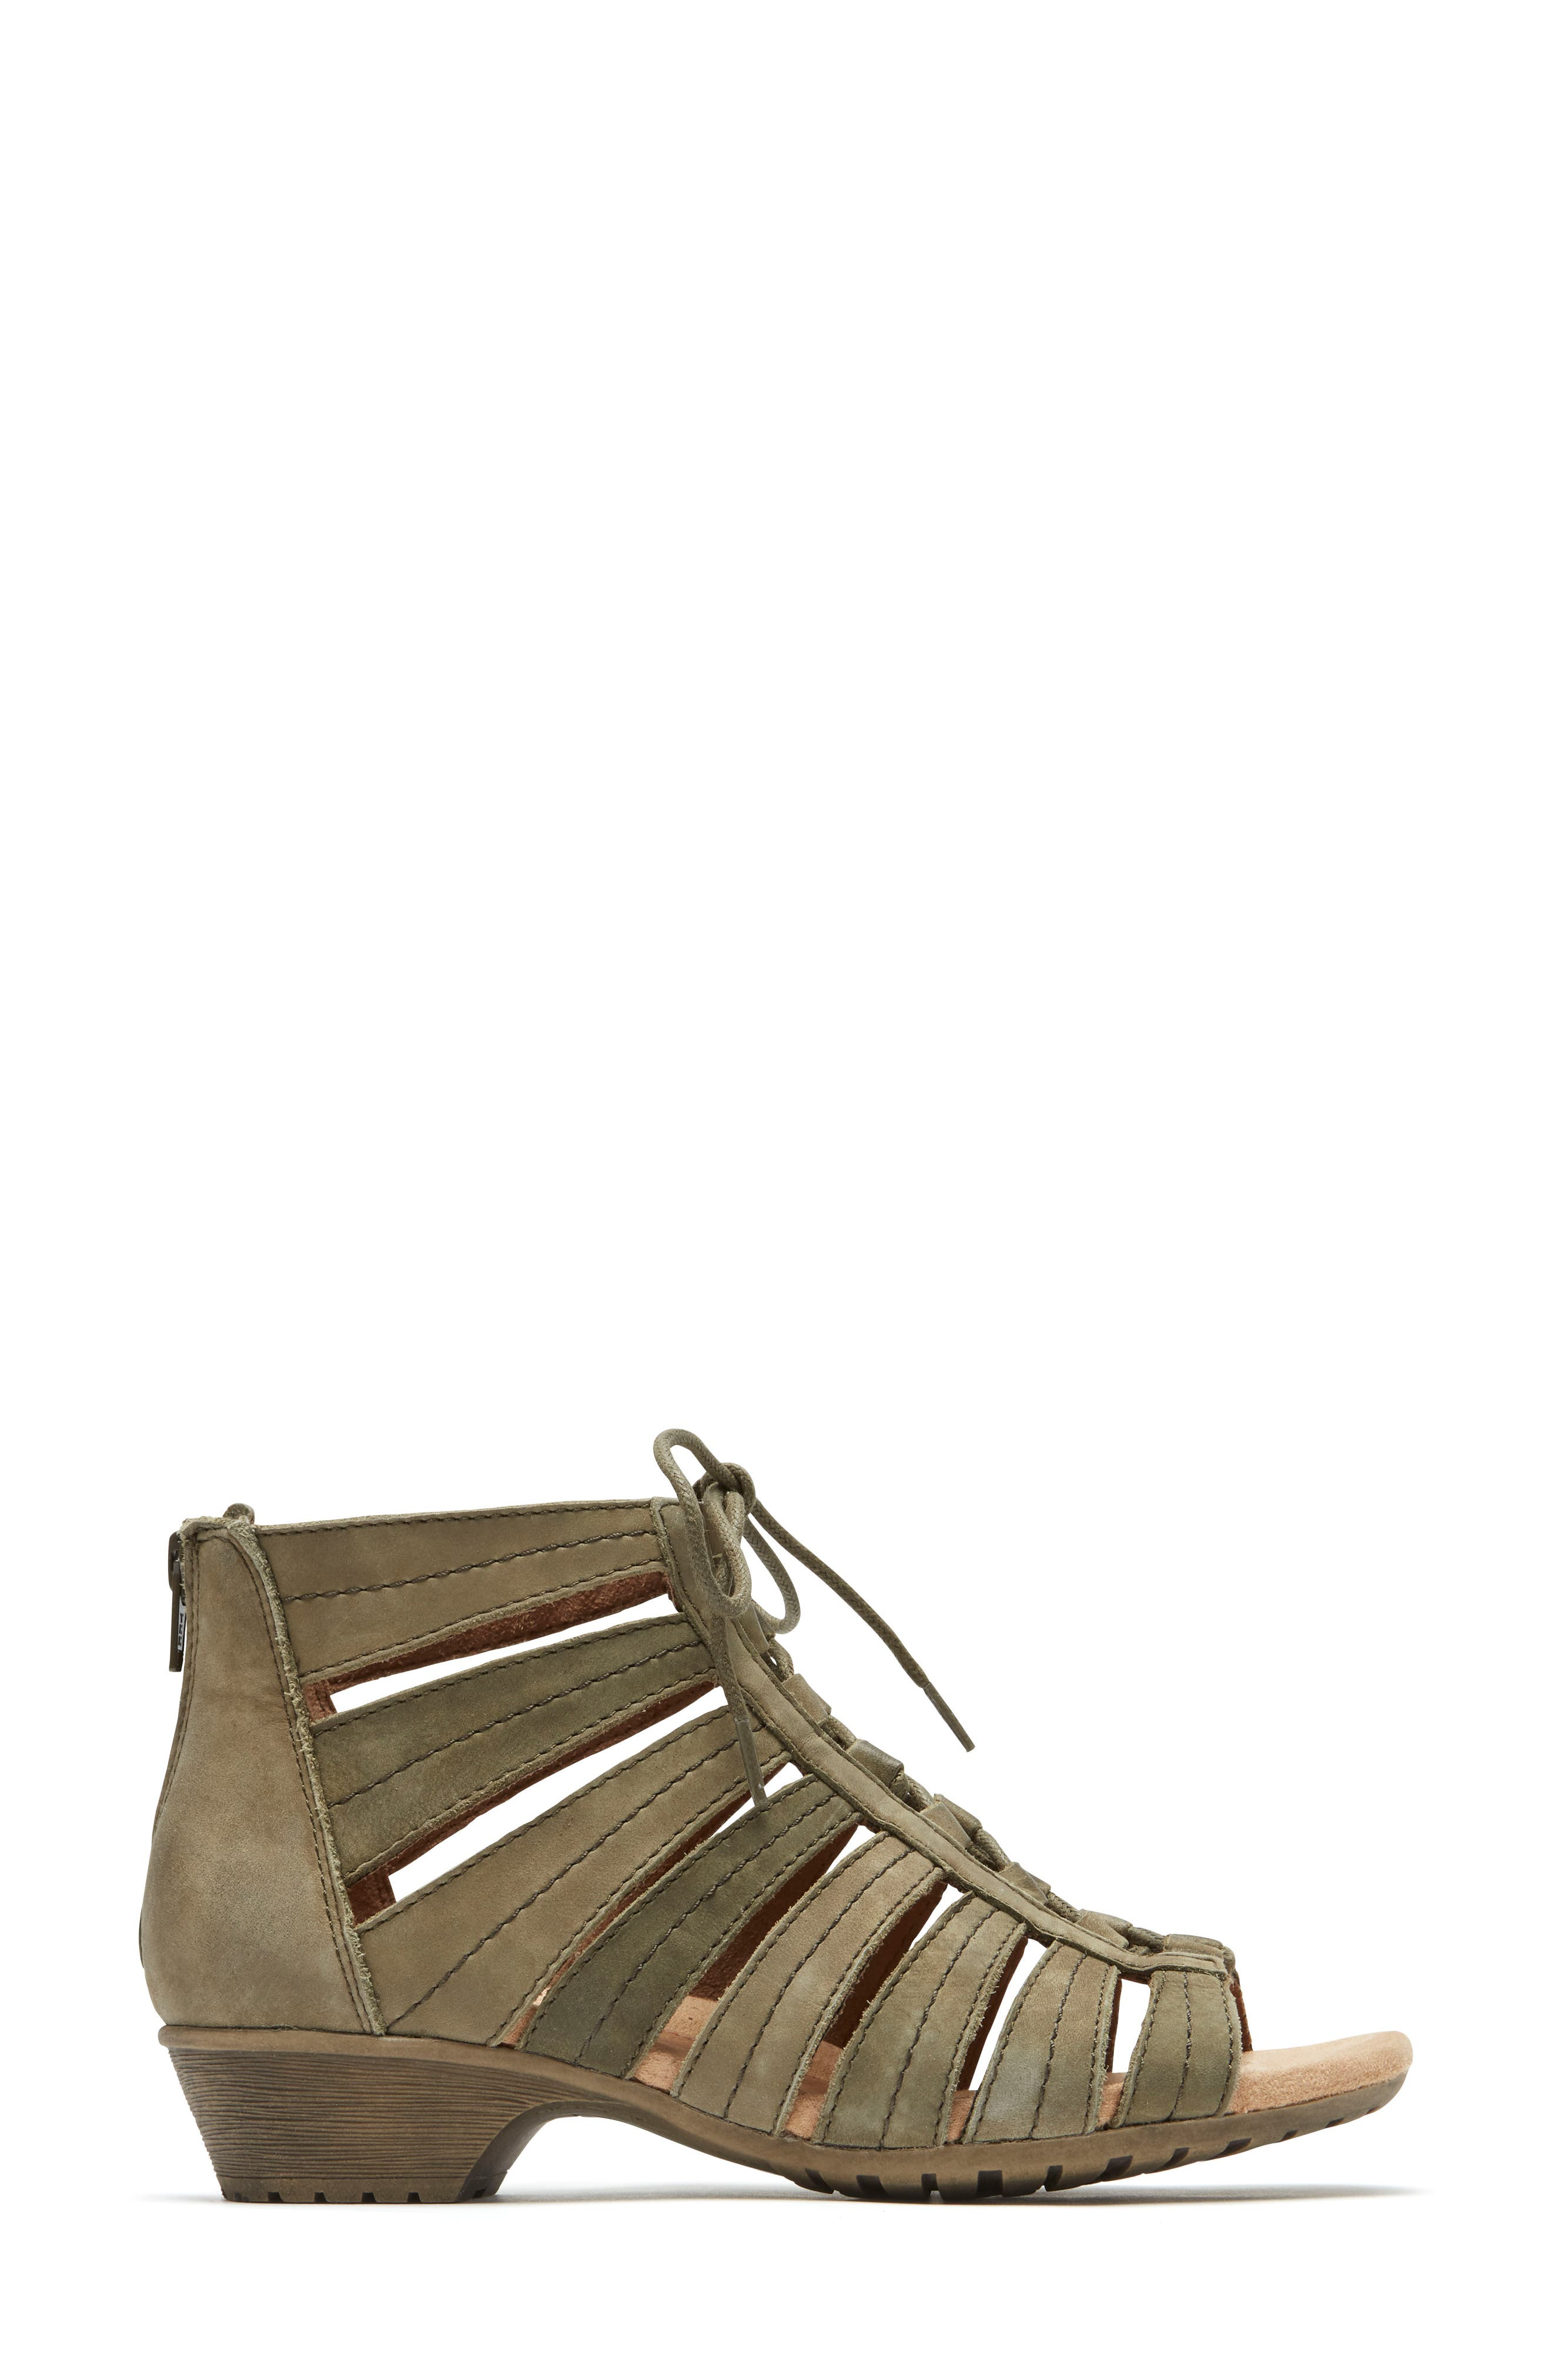 'Gabby' Lace-Up Sandal,                             Alternate thumbnail 18, color,